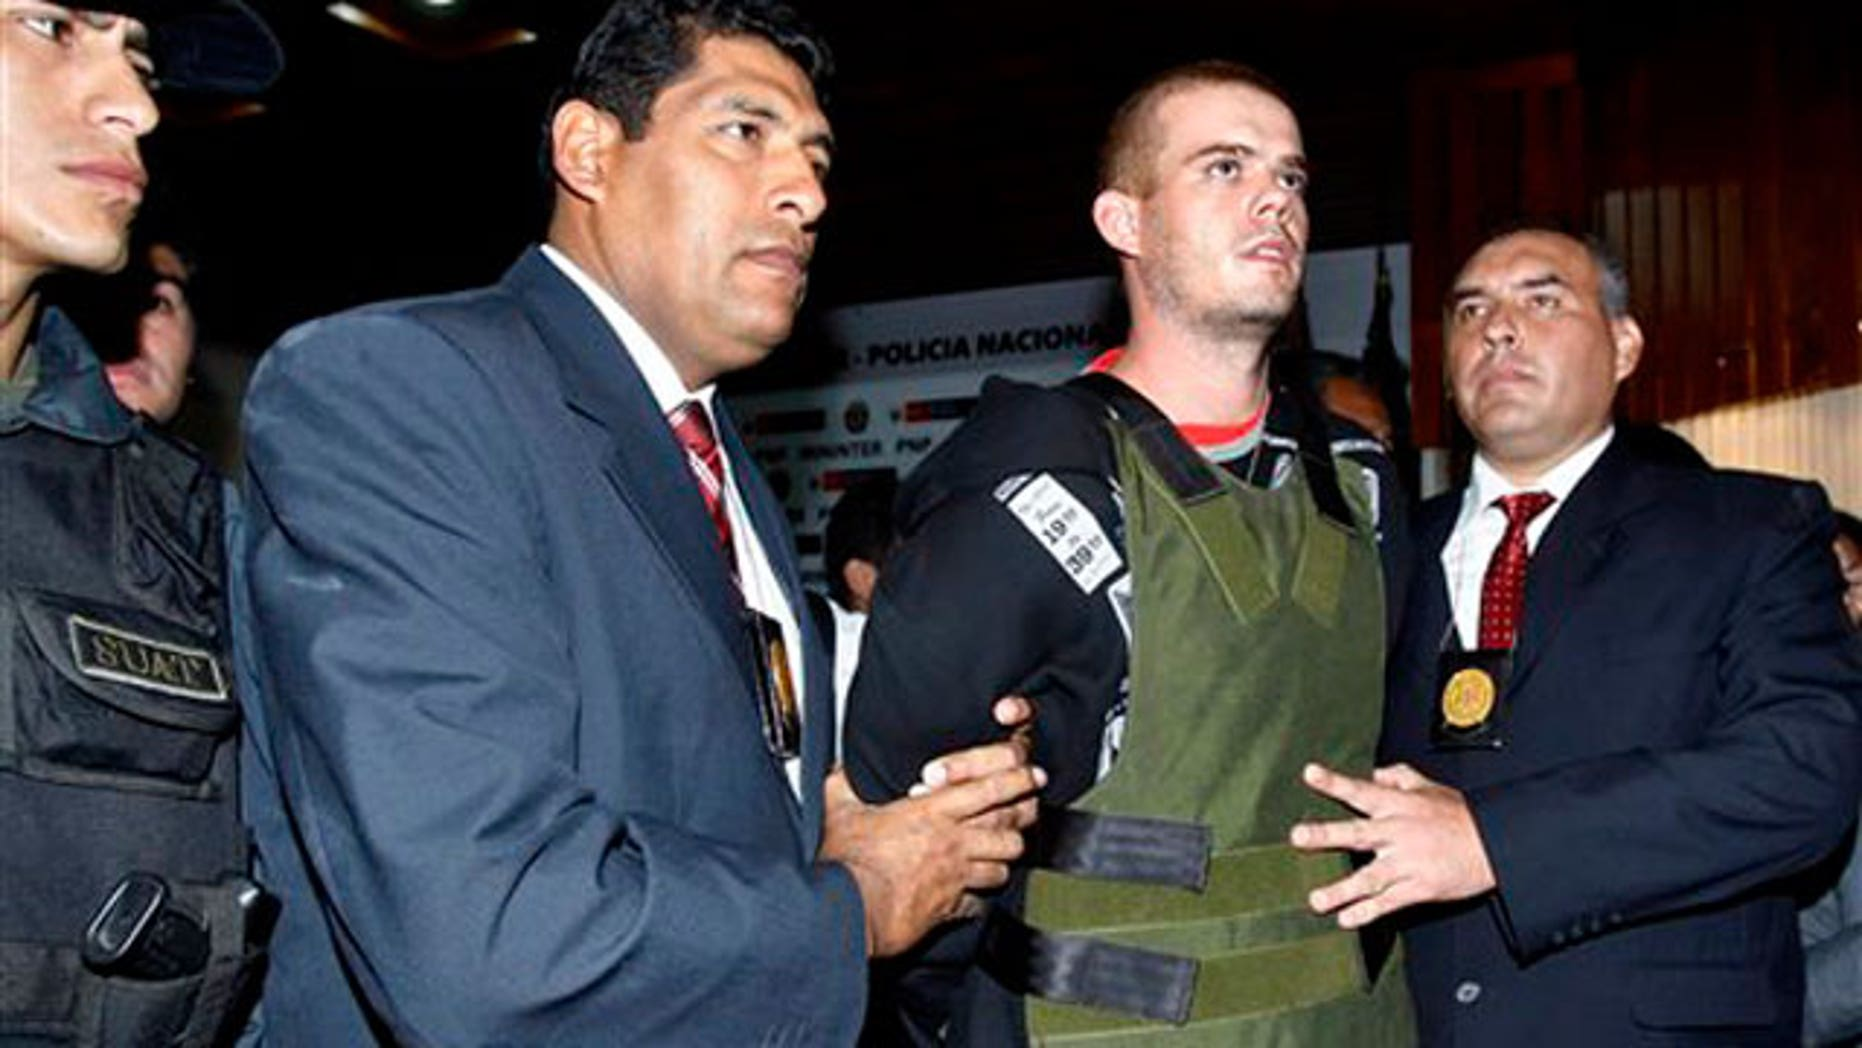 June 5, 2010: Police officers escort Joran van der Sloot, second right, during a press conference at a police station in Lima, Peru.